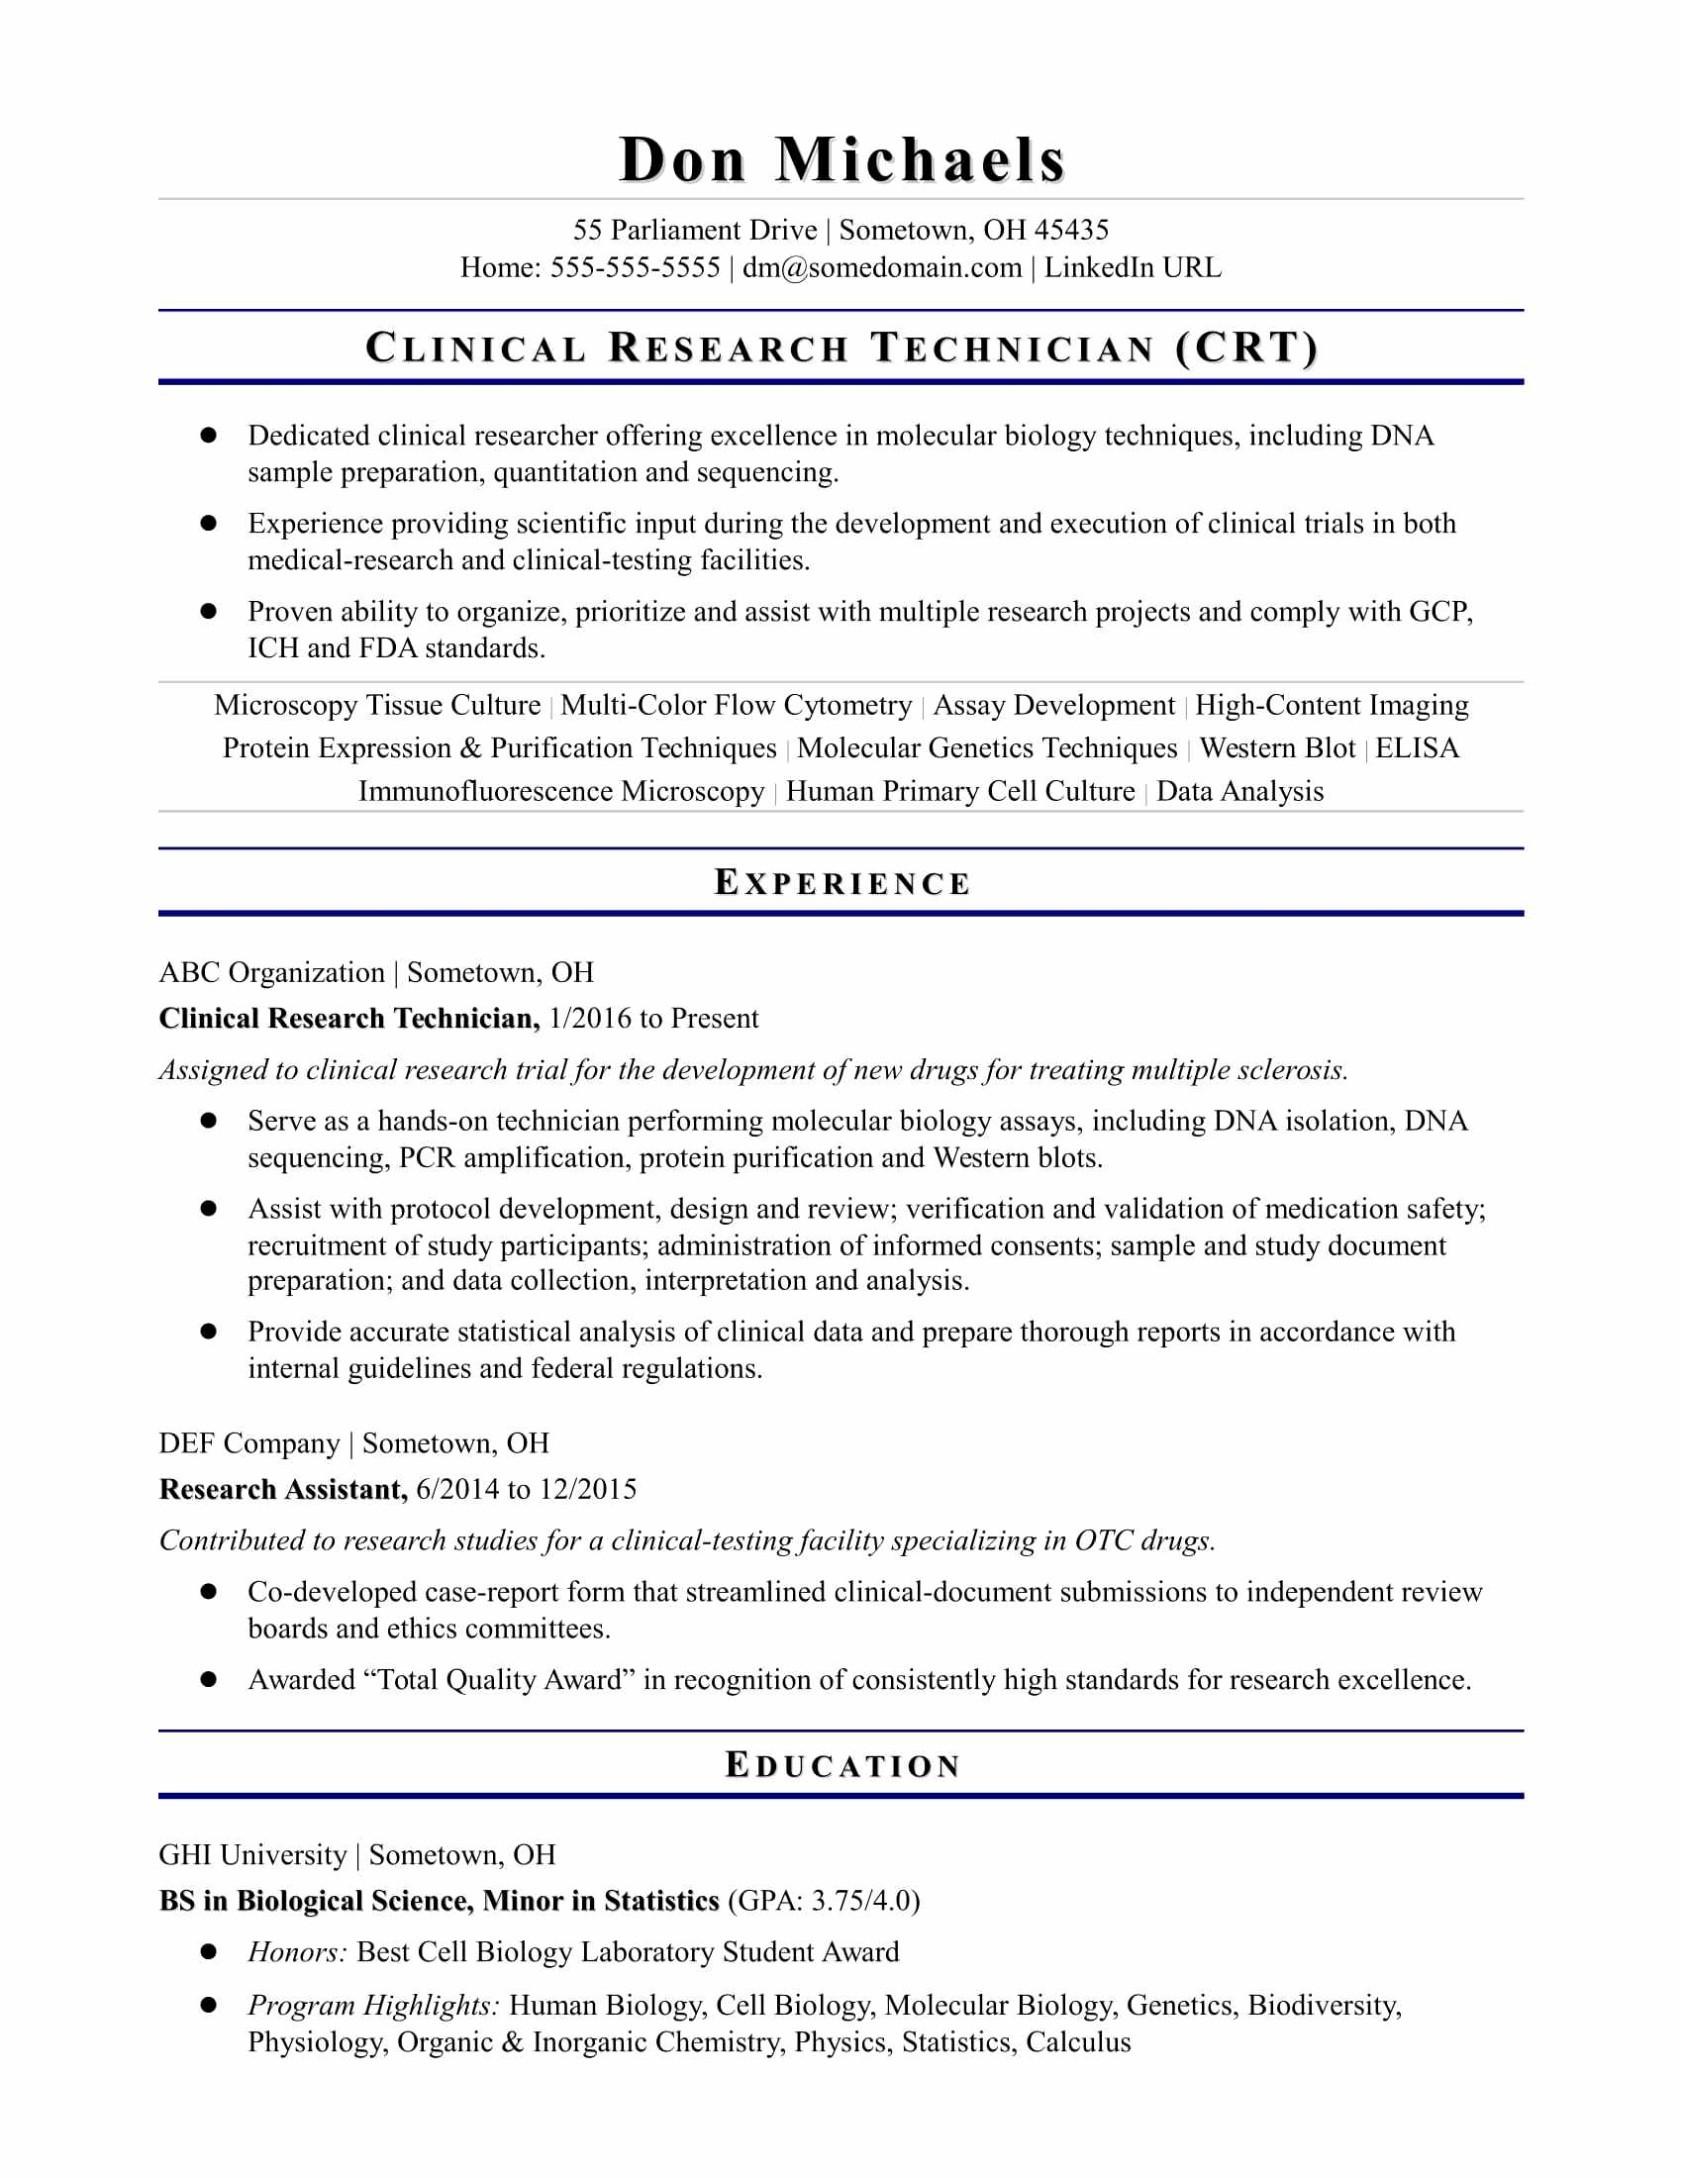 Clinical Research Resume - Sample Pharmacist Resume New 18 Inspirational Pharmacist Resume